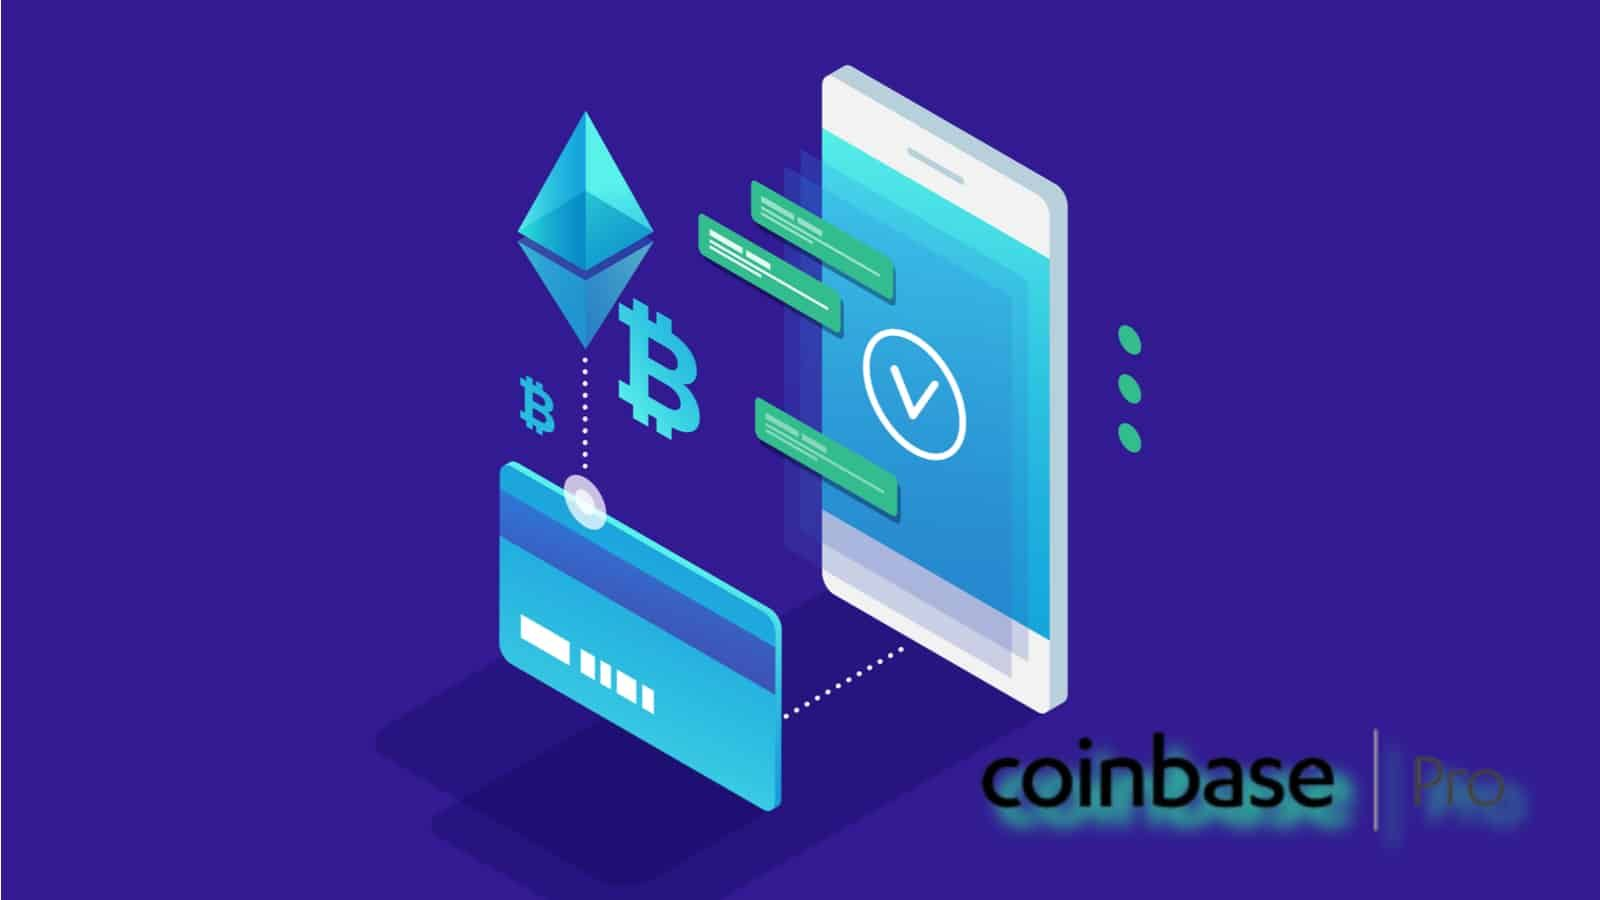 Ox Zrx Now Listed On Coinbase Pro Cryptocurrency Exchange